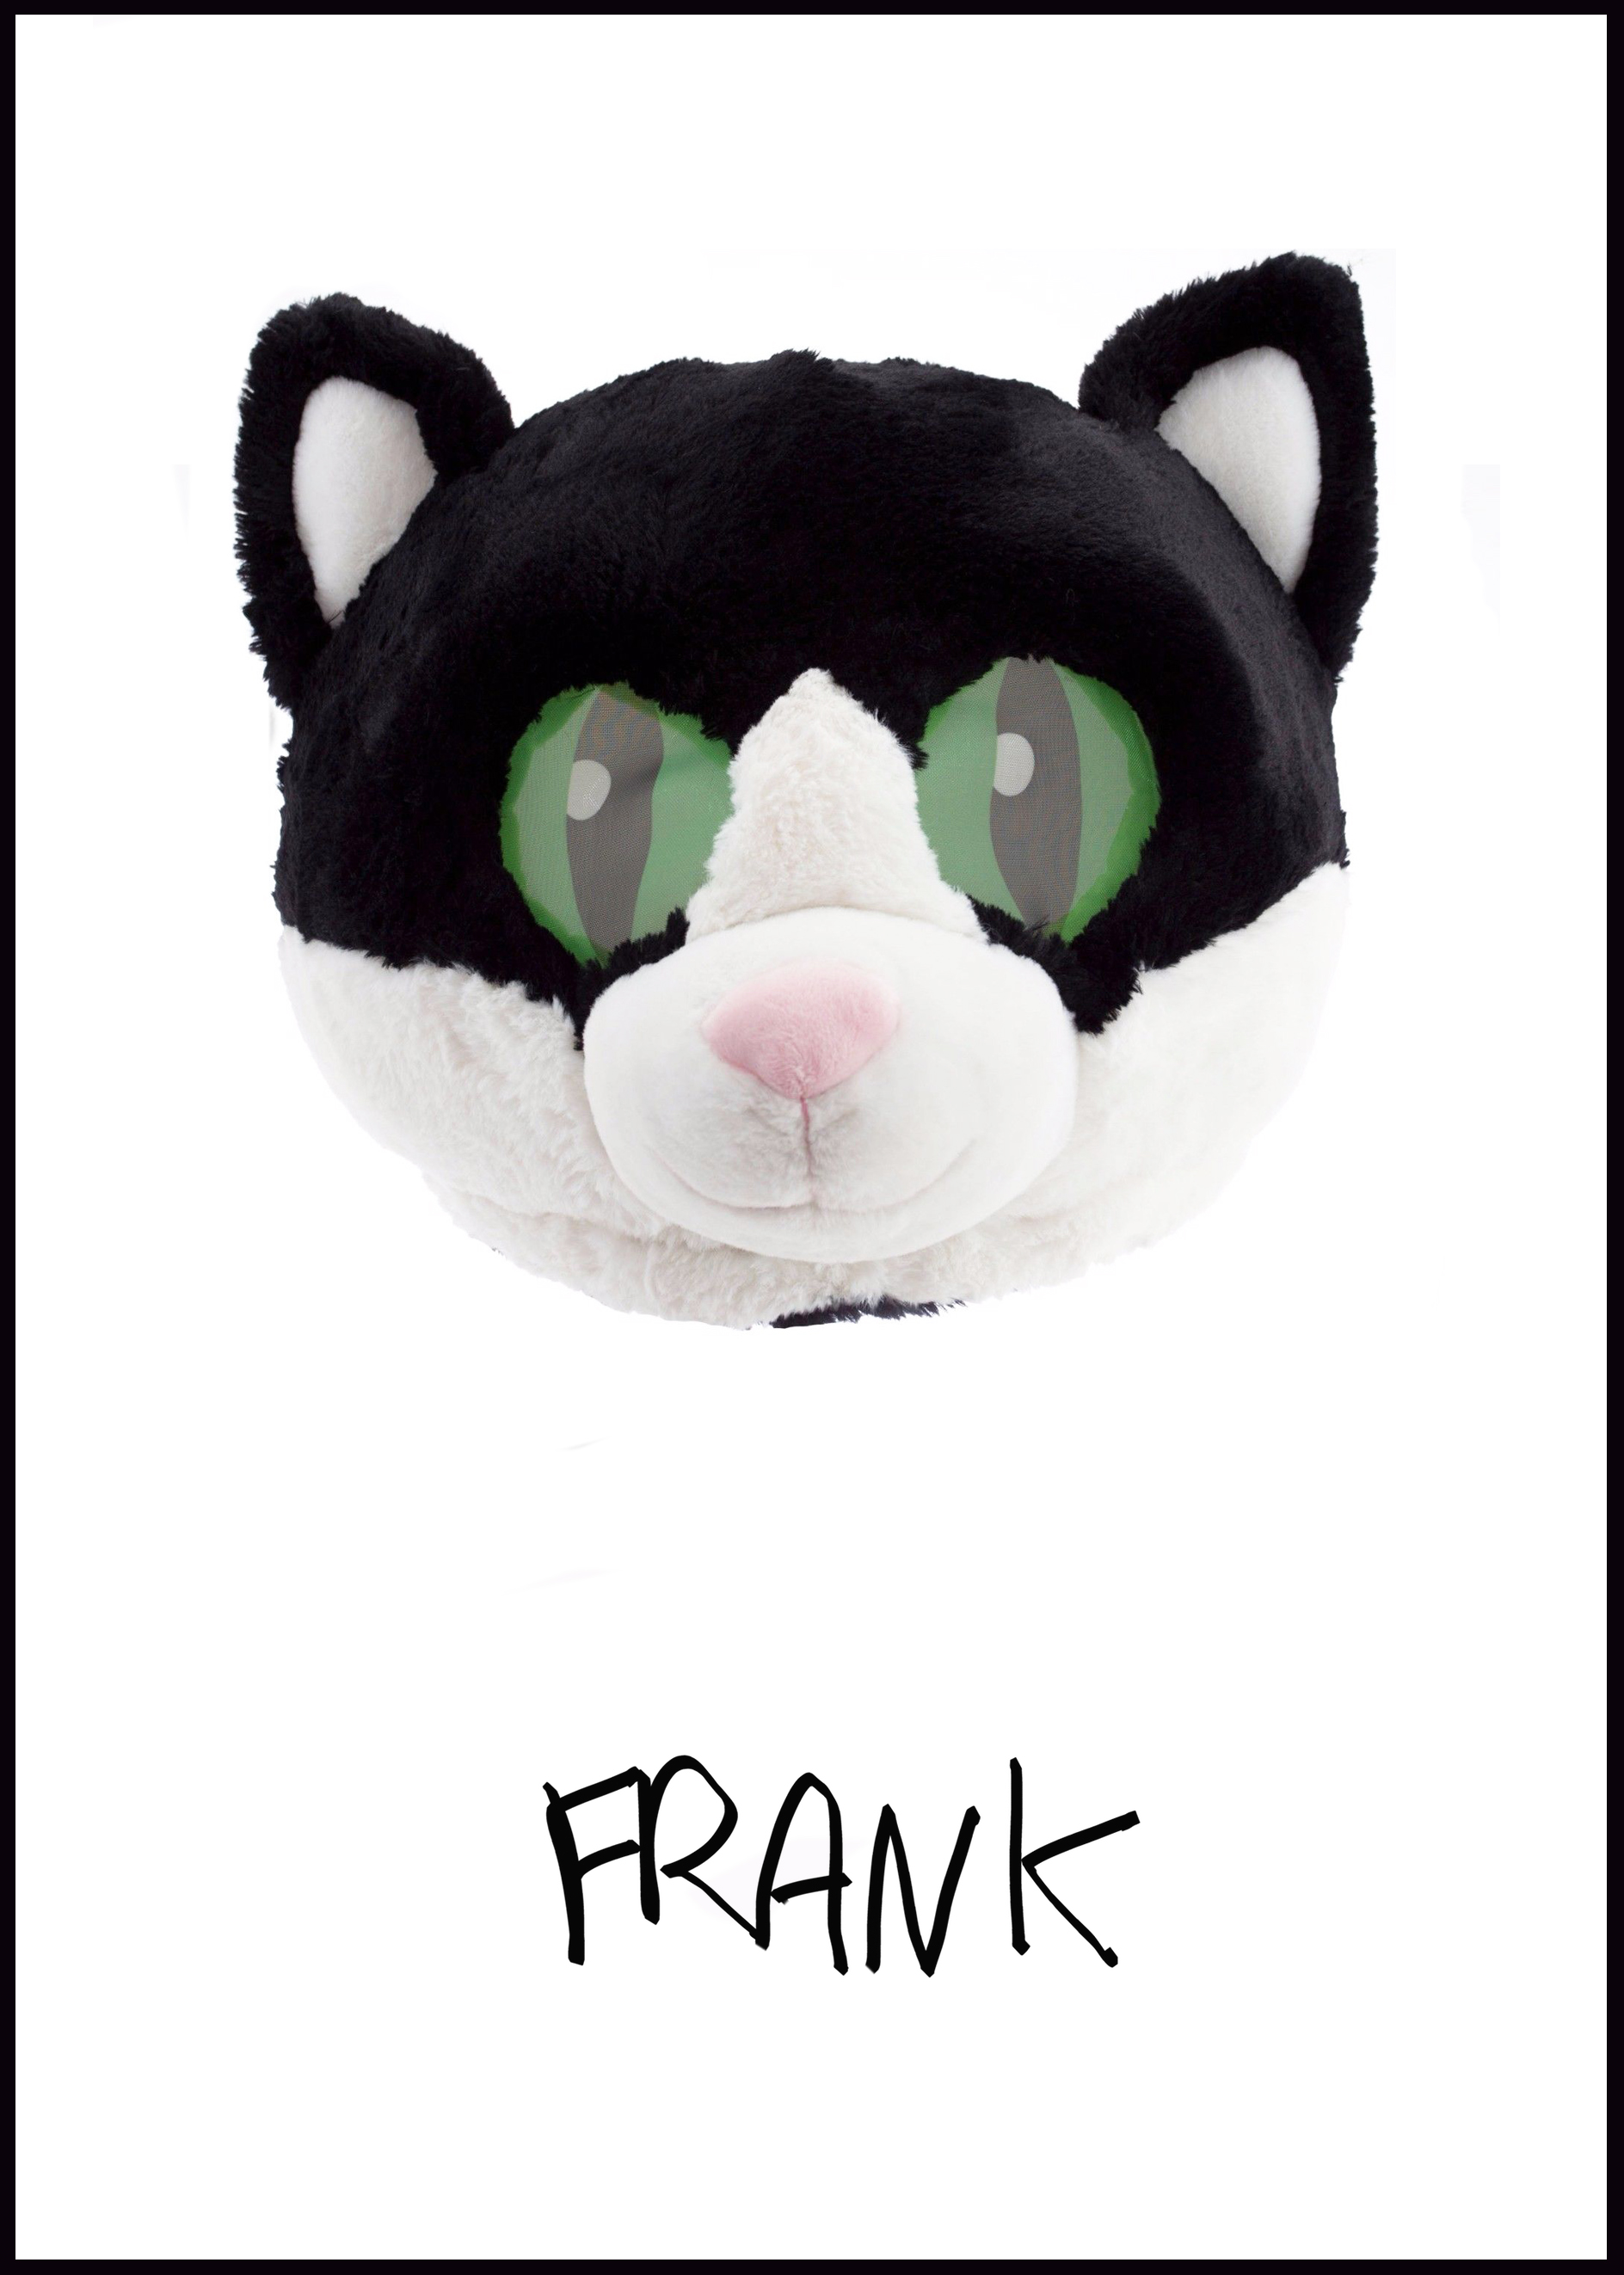 WHO IS FRANK? -  Frank is loveFrank is a bundle of oversized balloons.Frank is your favorite song on repeat.Frank is shy and hides in neon, carpeted rooms.Frank juggles and wears multiple masks.Frank purrs away anxious thoughts.